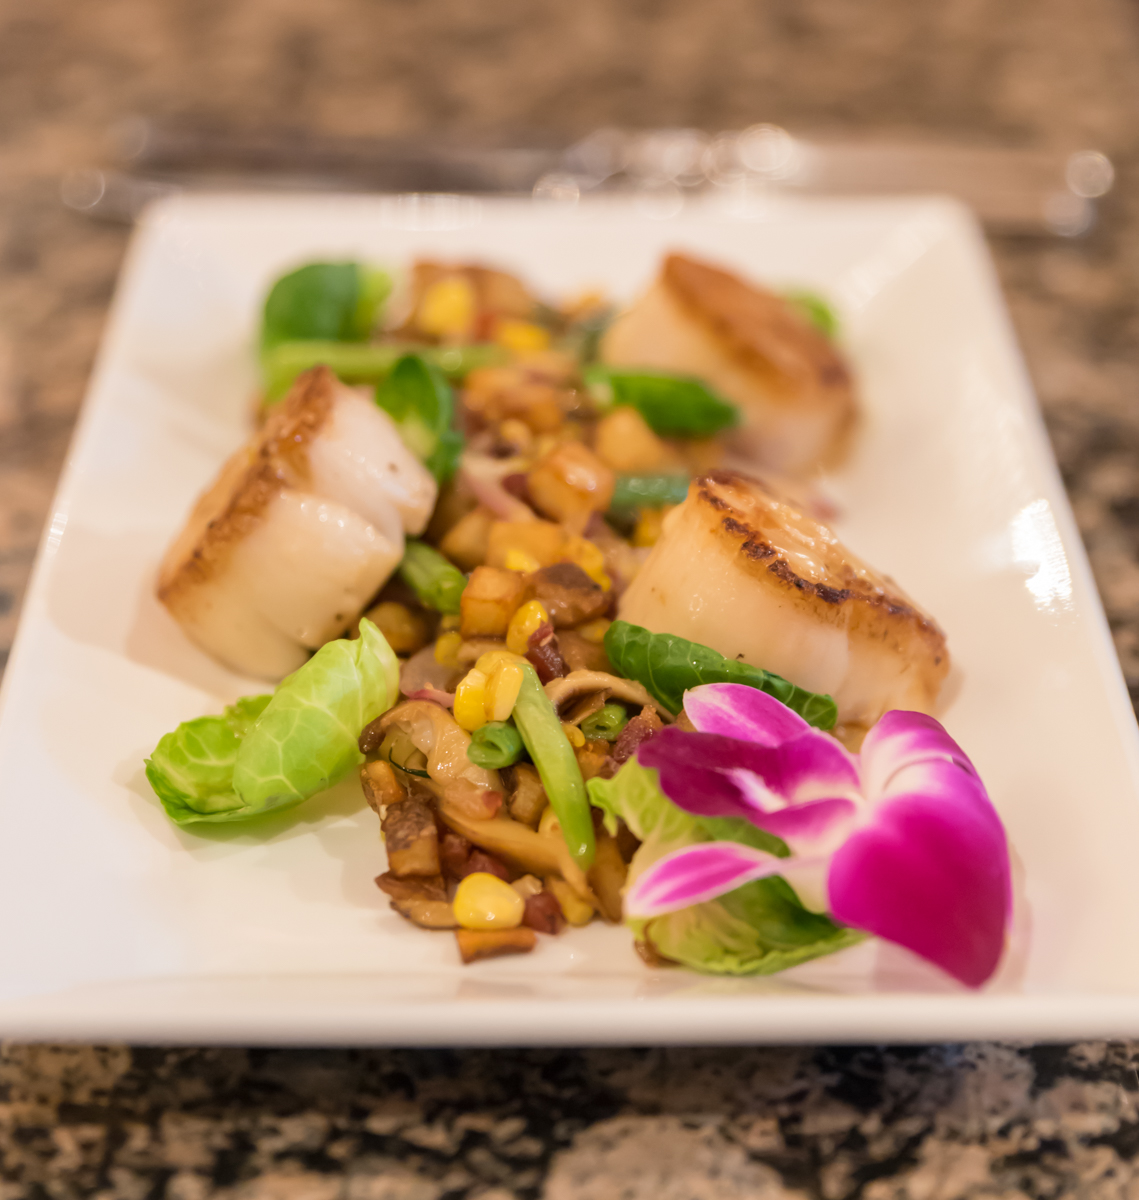 Scallops and Hash: caramelized scallops over potato hash with diced red onion, shiitake mushrooms, roasted corn, candied pancetta, haricot verts, and citrus vinaigrette / Image: Sherry Lachelle Photography // Published: 3.21.18